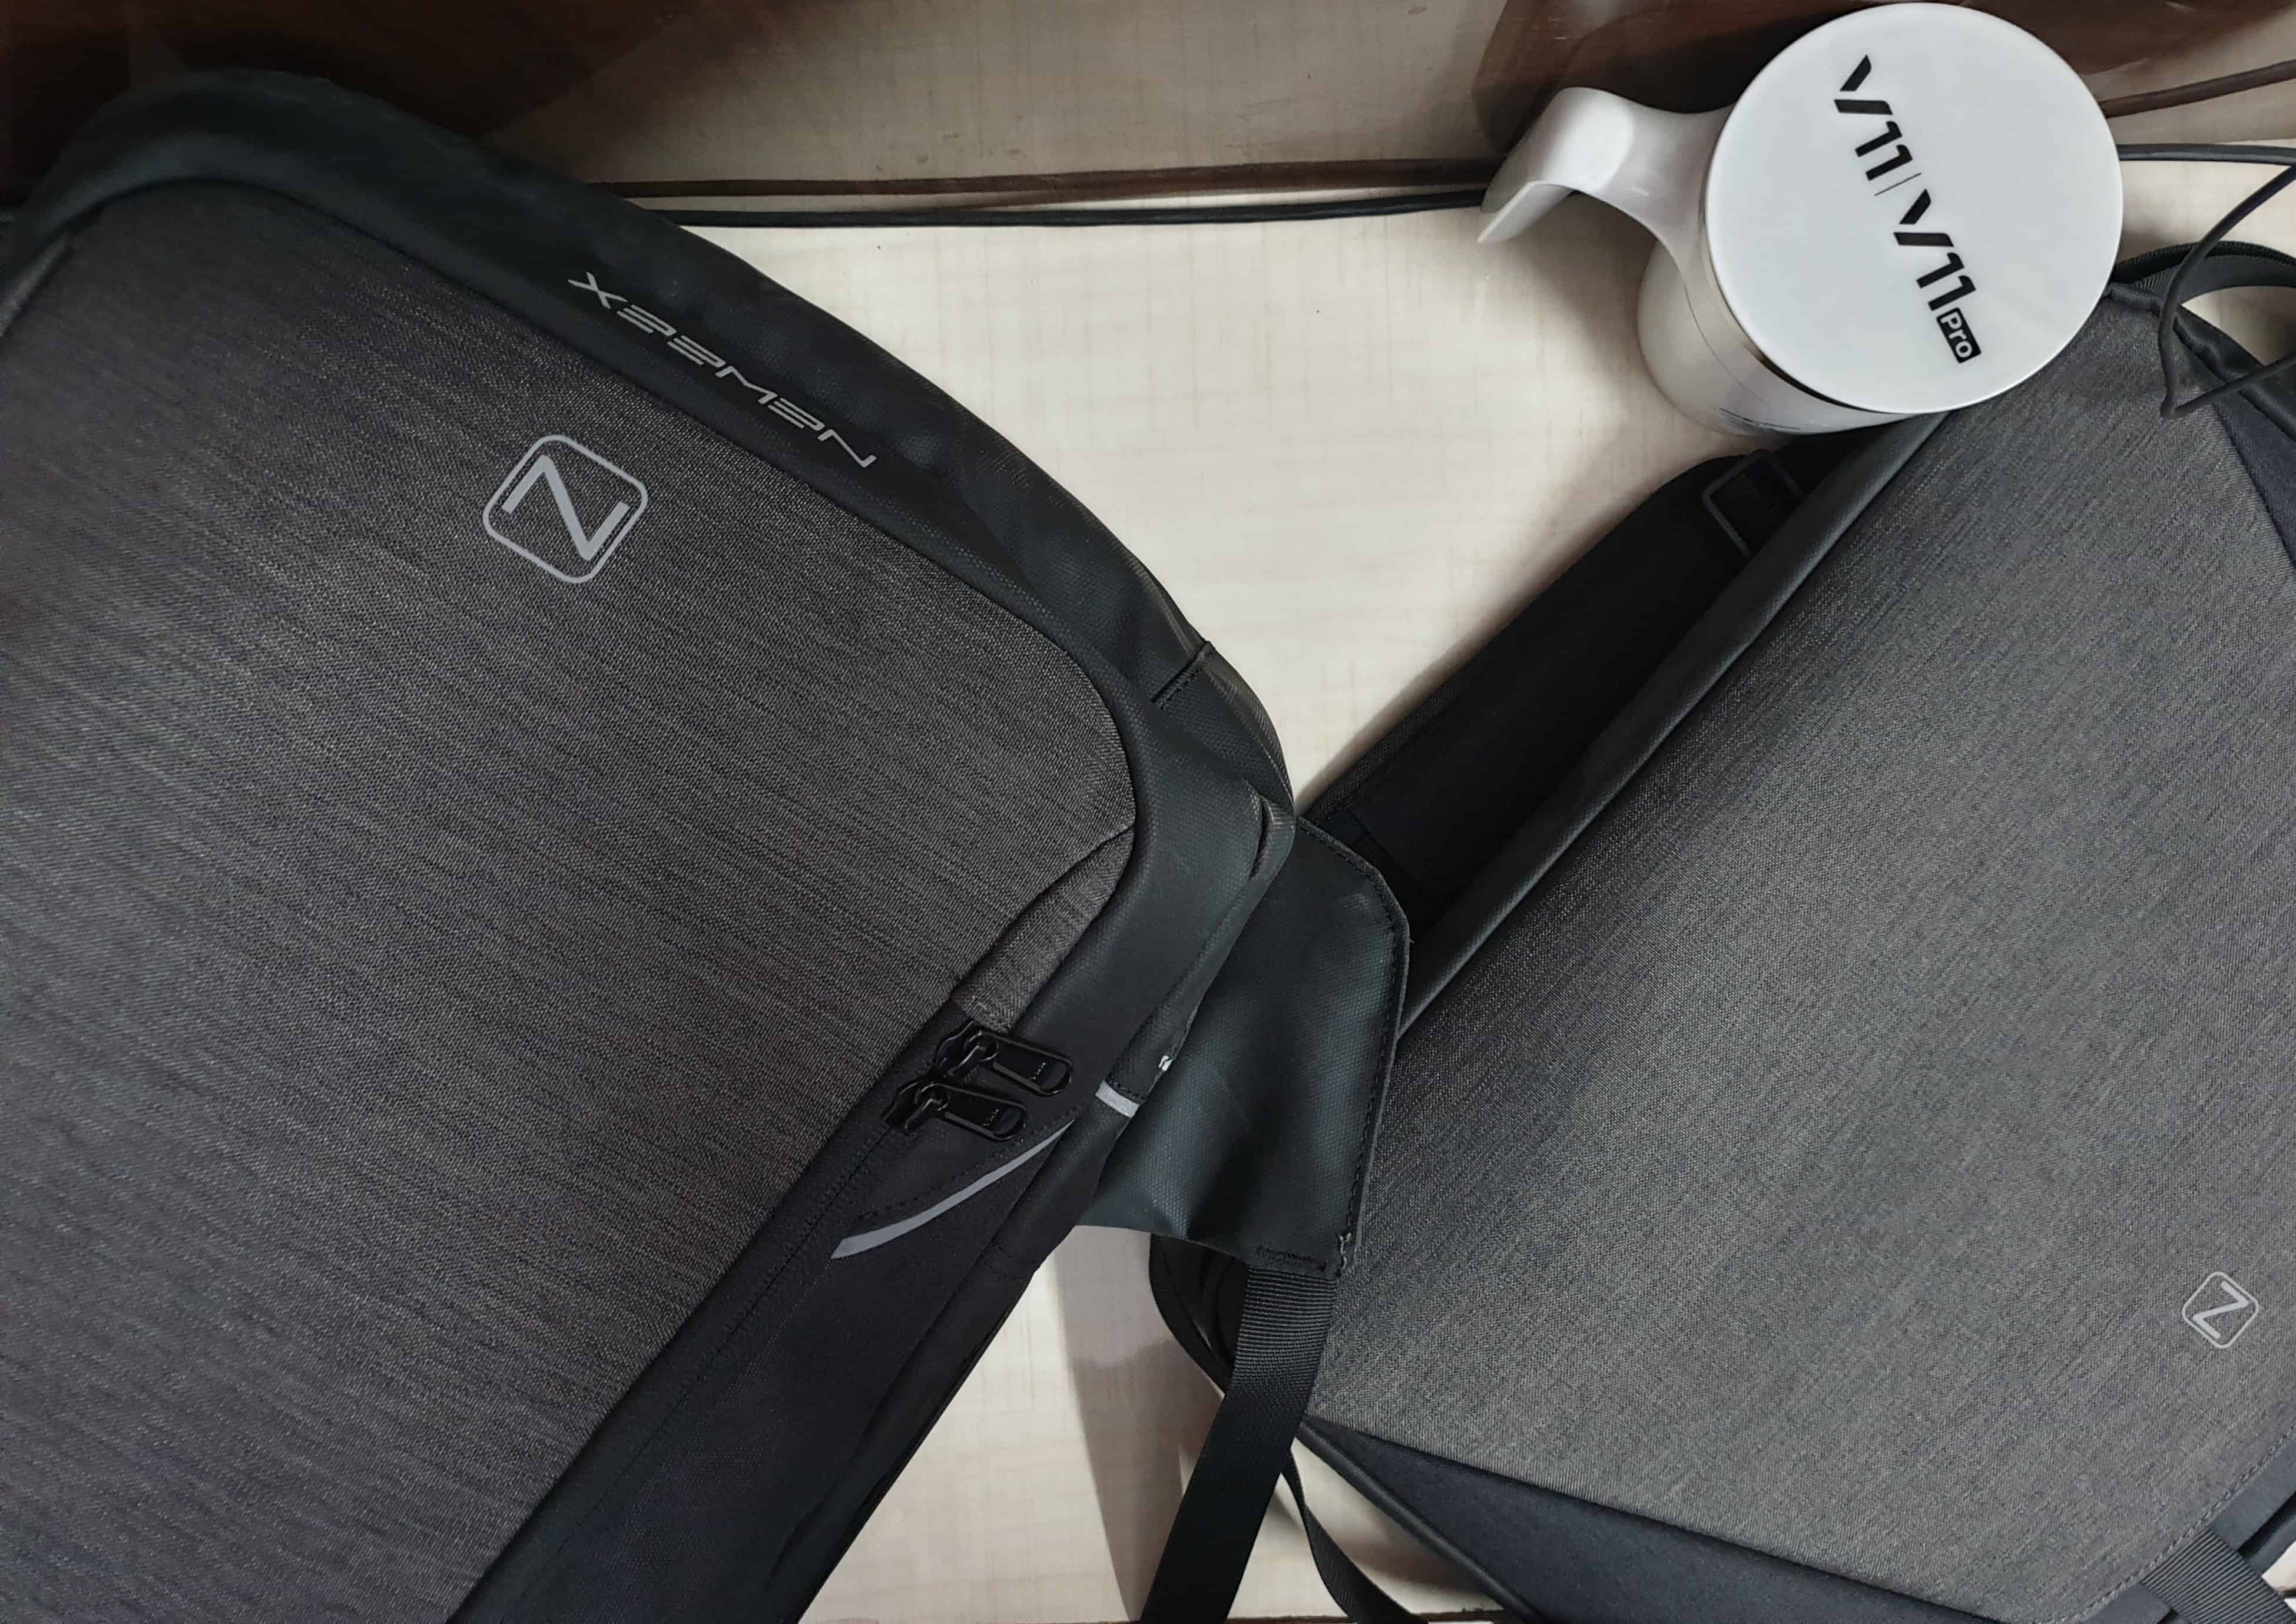 Neweex Backpack Review - Now you can Travel with Style! - 3